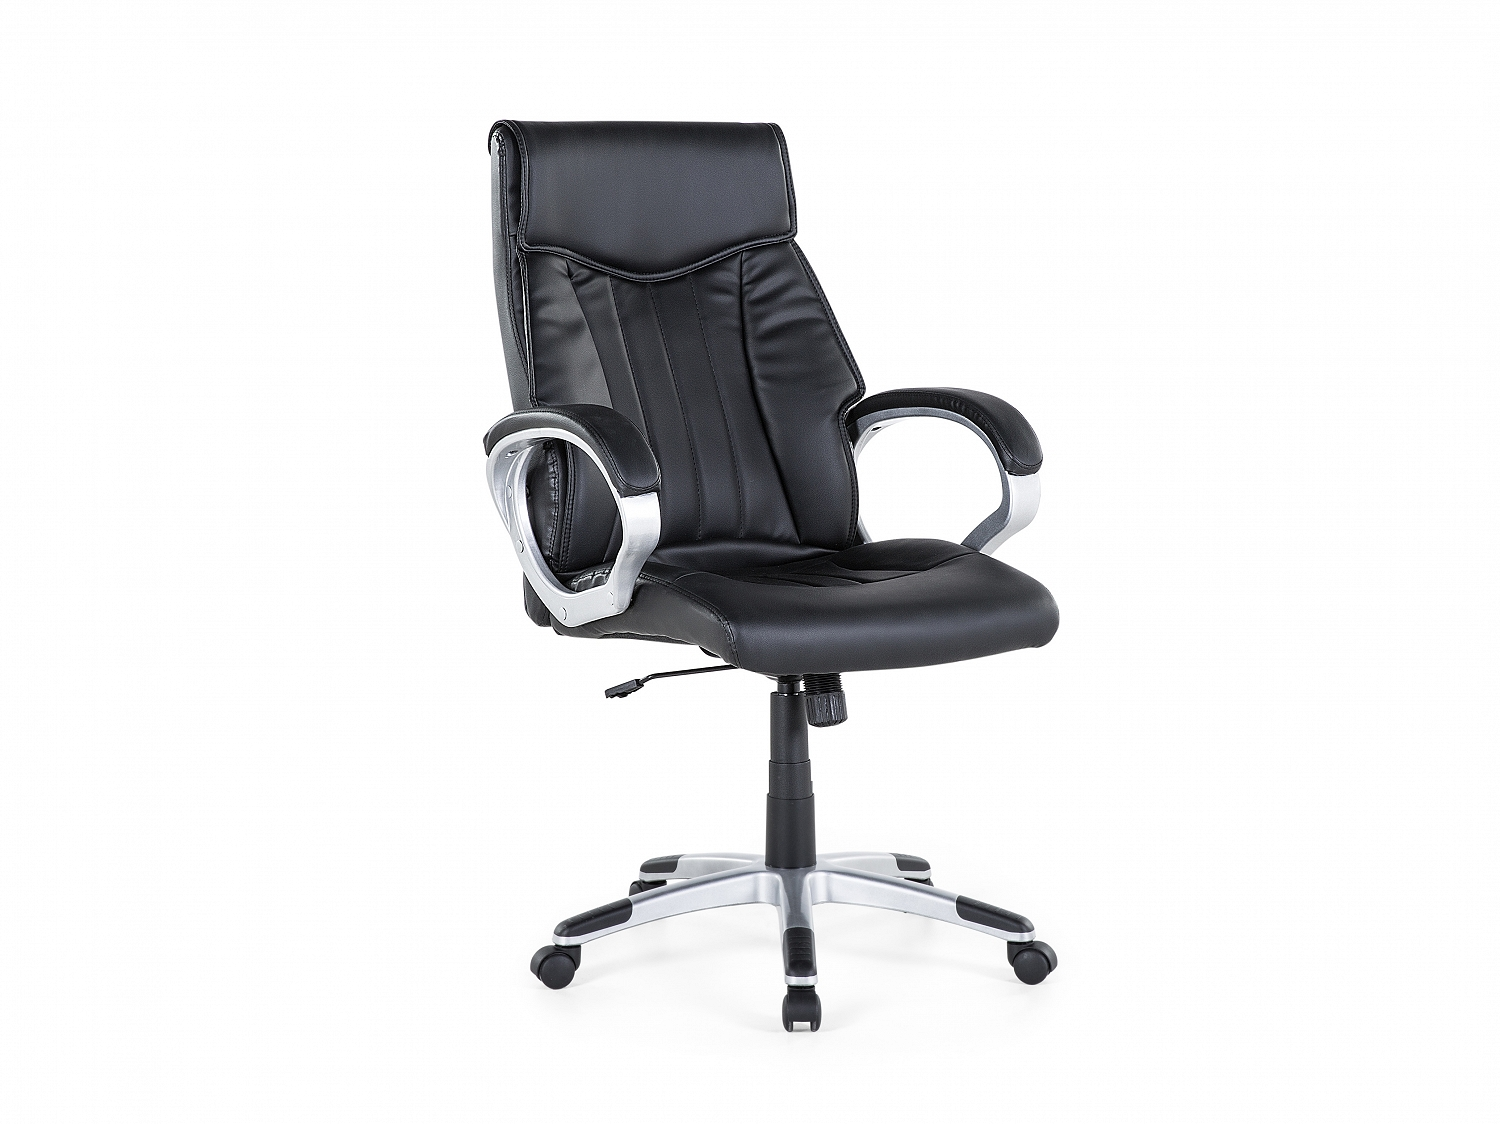 office chair swivel chair faux leather ergonomic desk chair swivel black ebay. Black Bedroom Furniture Sets. Home Design Ideas